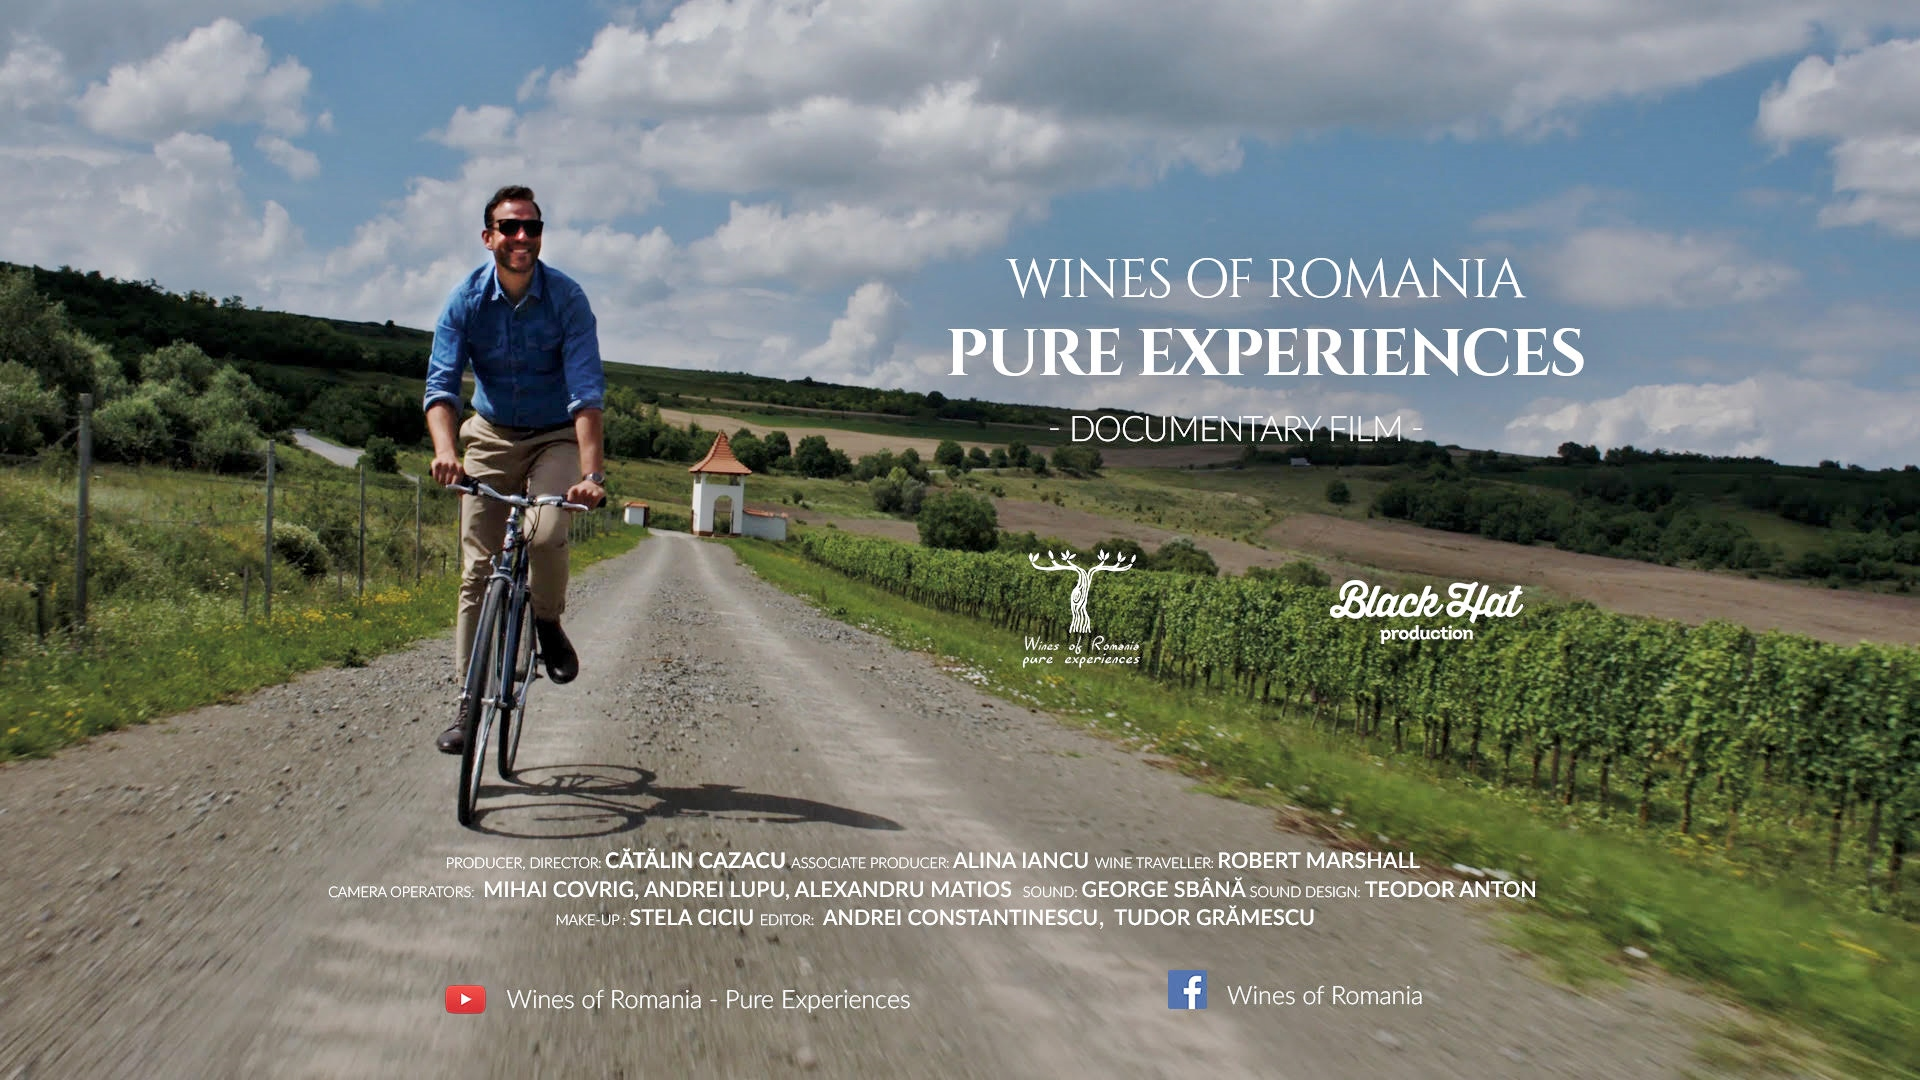 Wines of Romania documentary film